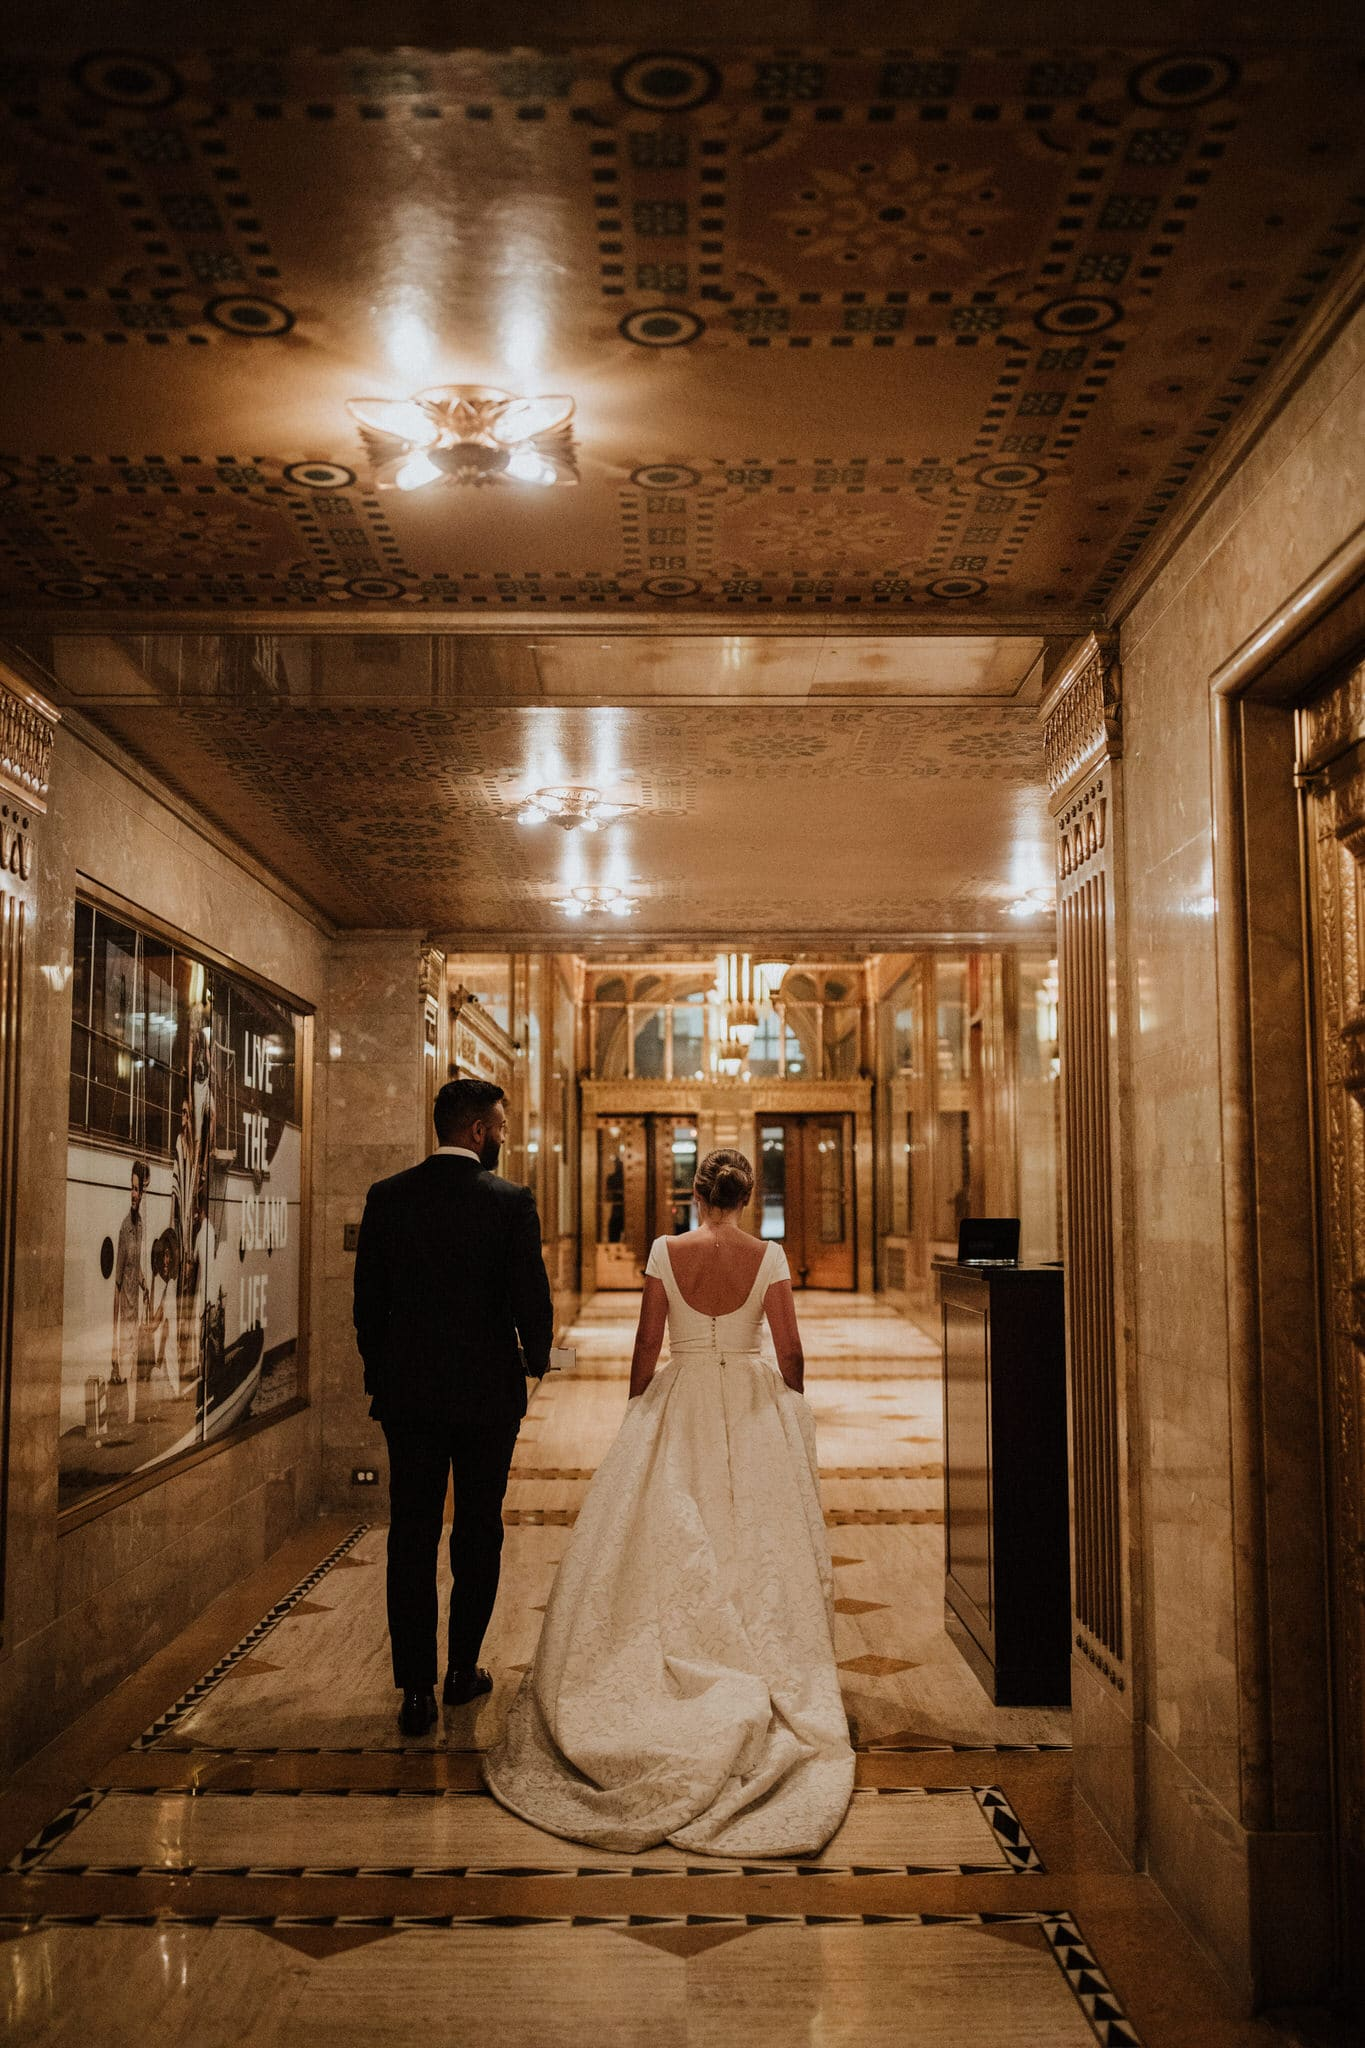 The bride and groom in The French Building in New York City. Wedding Photographer Brent Calis.